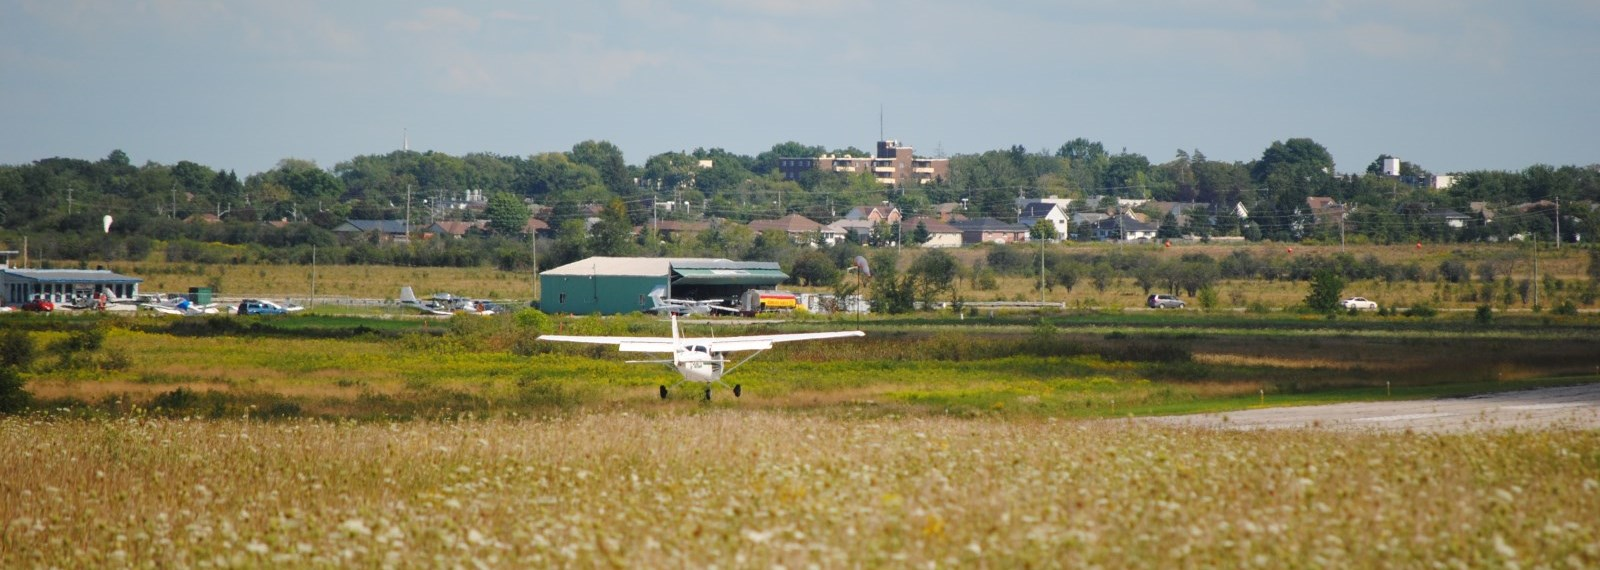 plane taking off at Kawartha Lakes Airport